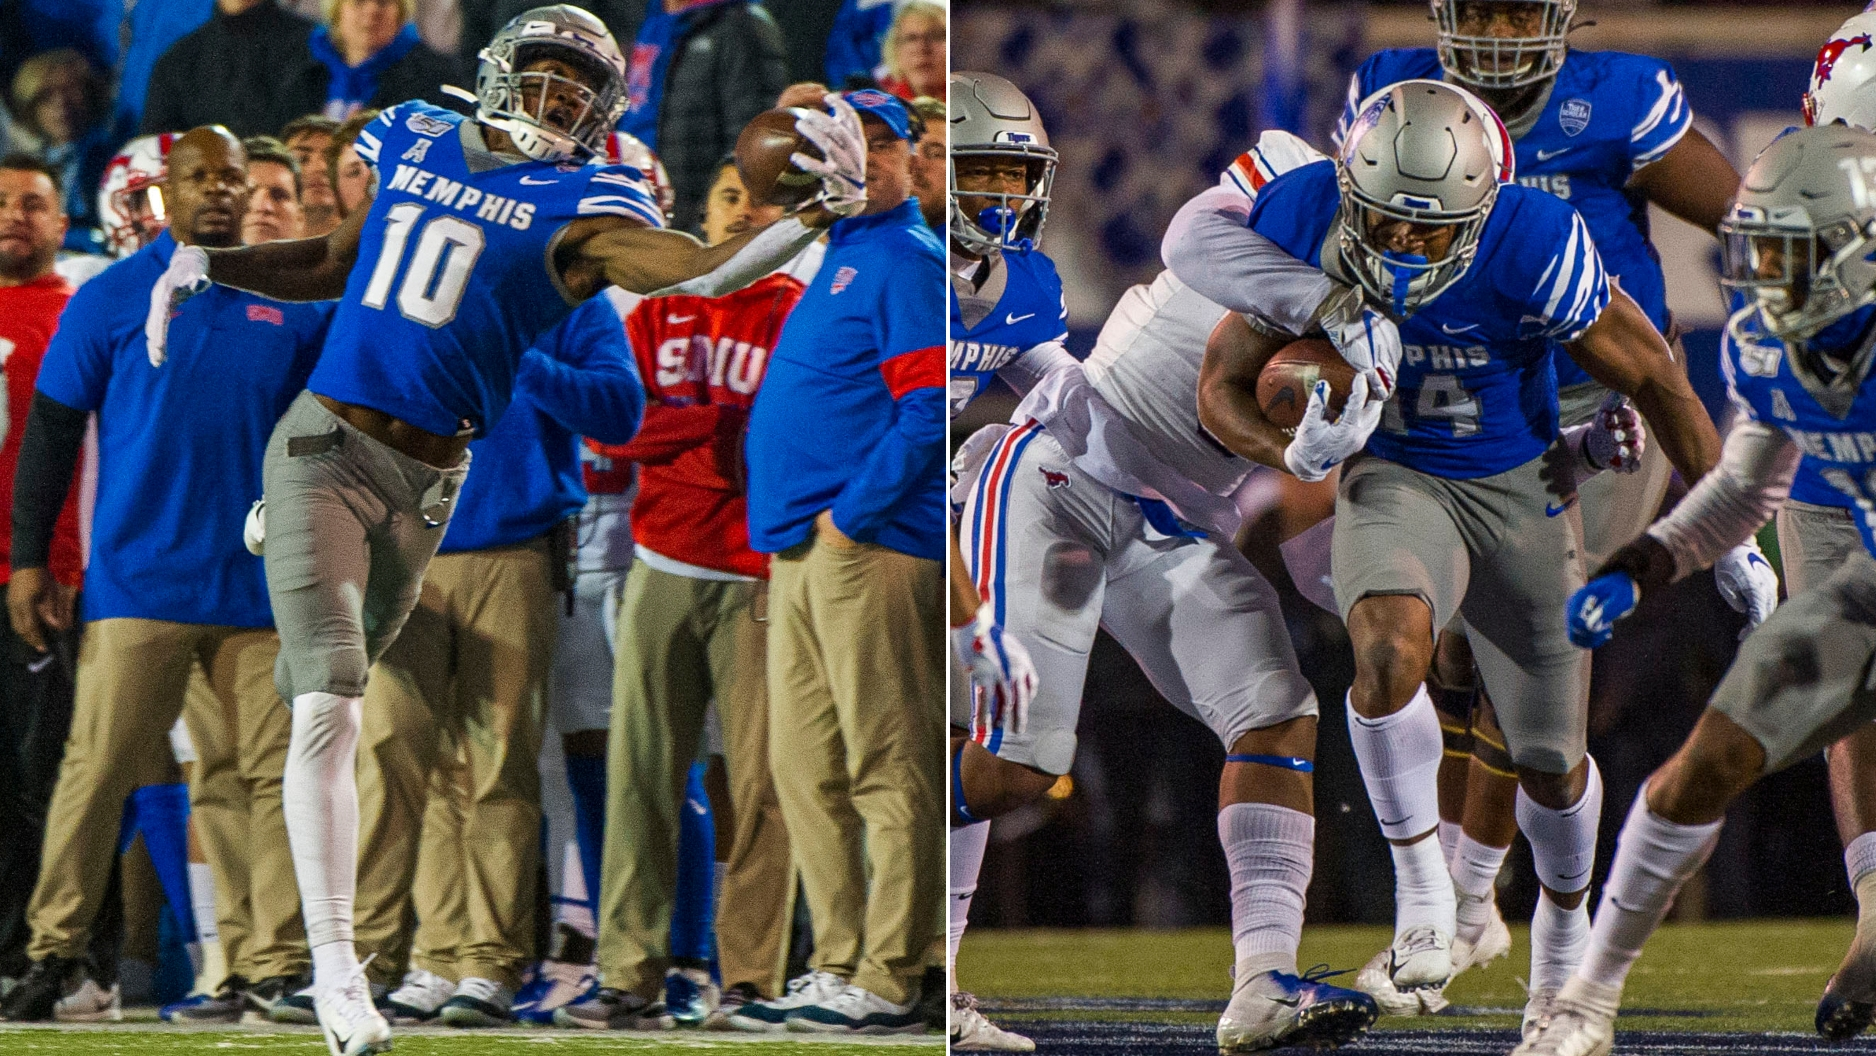 Memphis Gibson Coxie Combine For 531 Total Yards Vs Smu Watch Espn